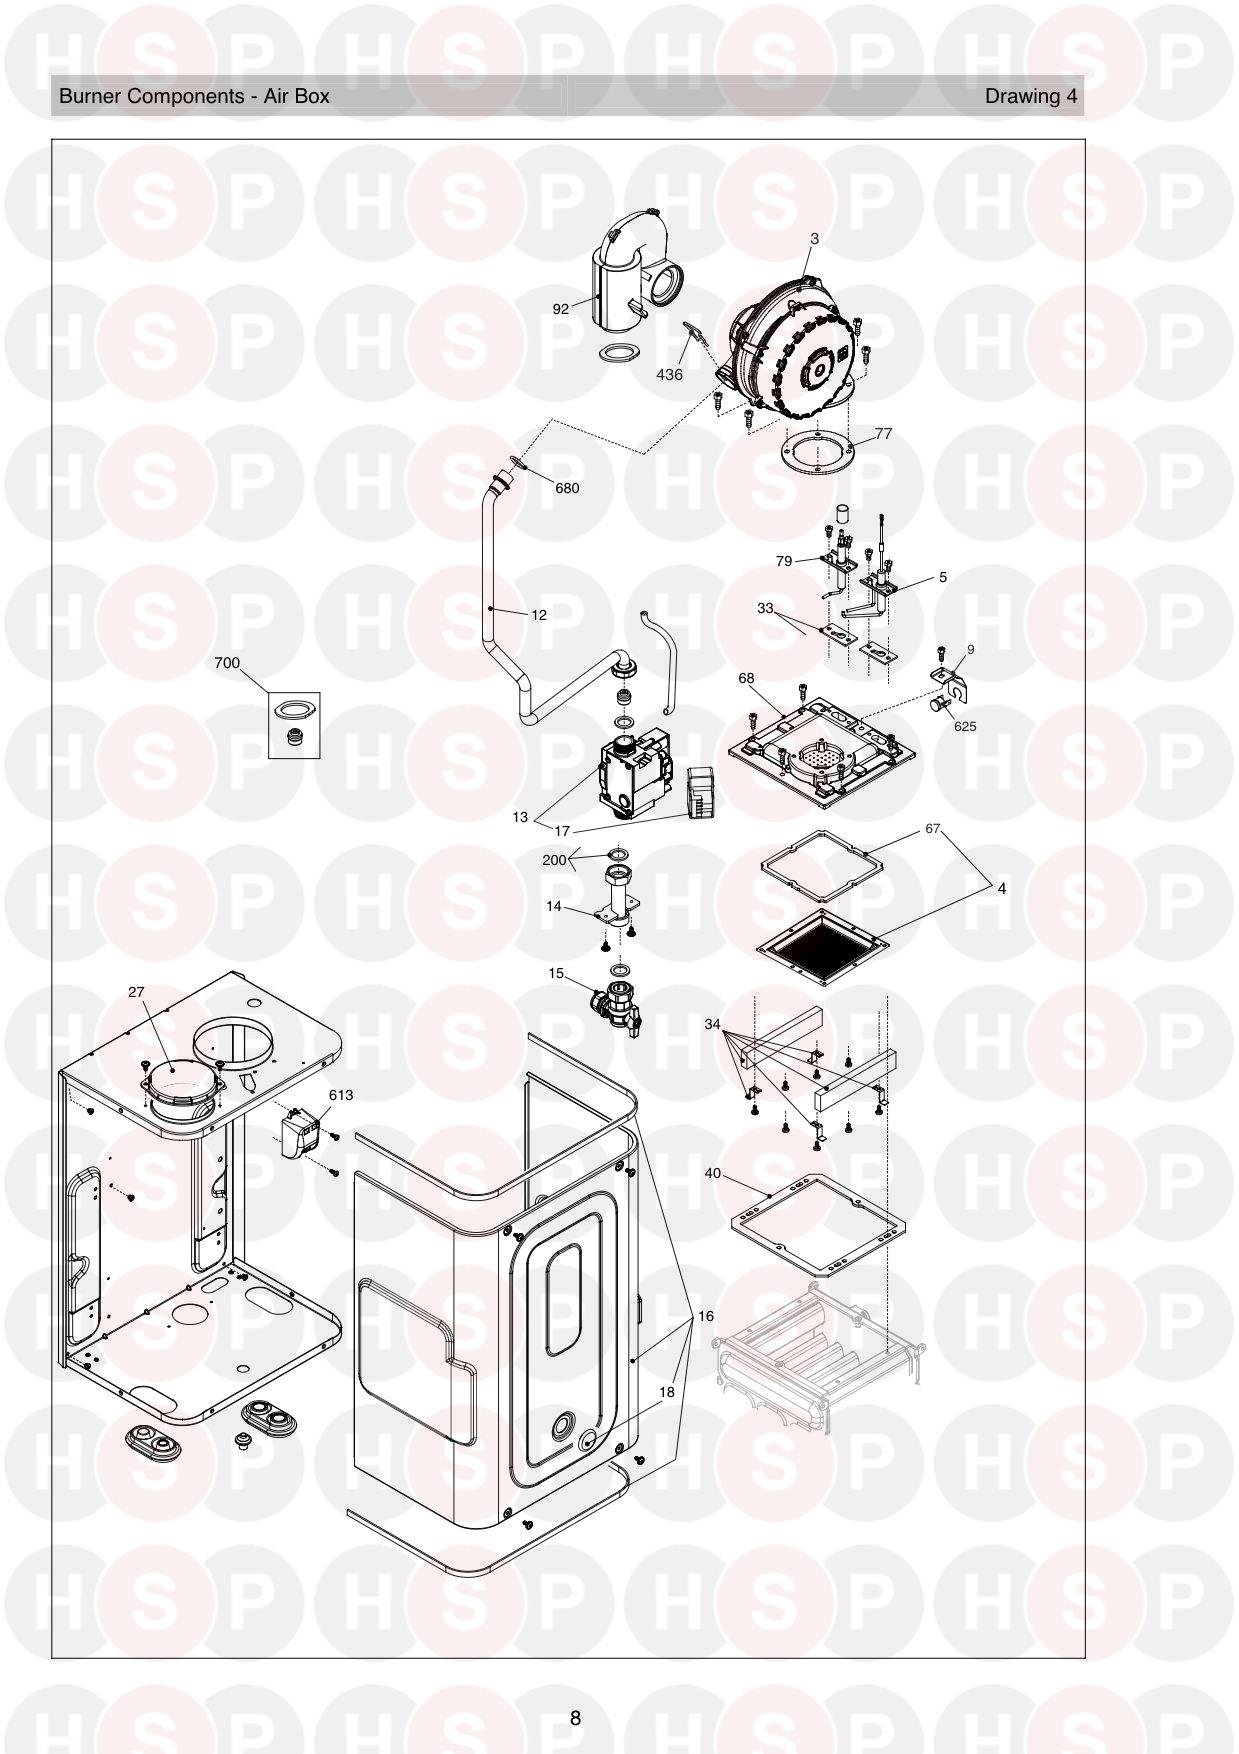 Burner diagram for Vokera Vision 20S ERP Rev 9 (01/2019)